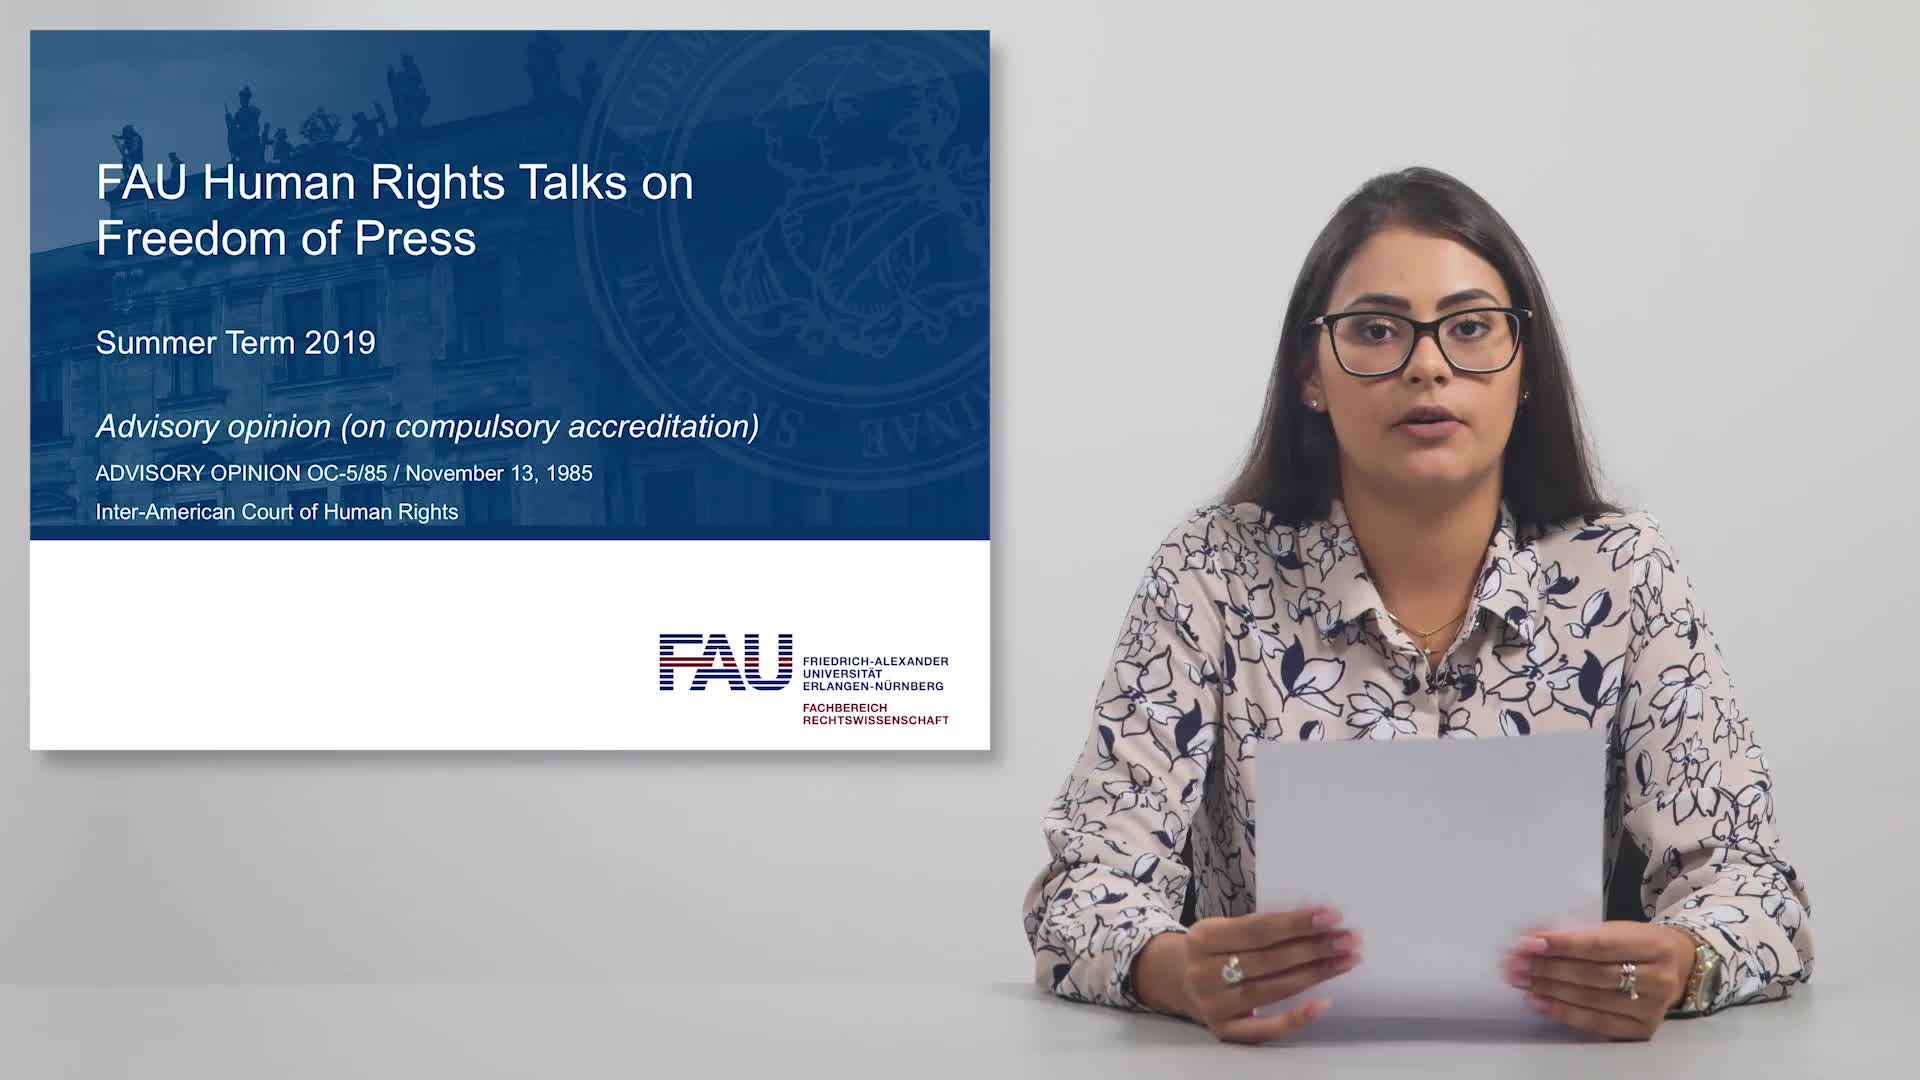 FAU Human Rights Talks – Summer Term 2019: Advisory opinion (on compulsory accreditation) preview image